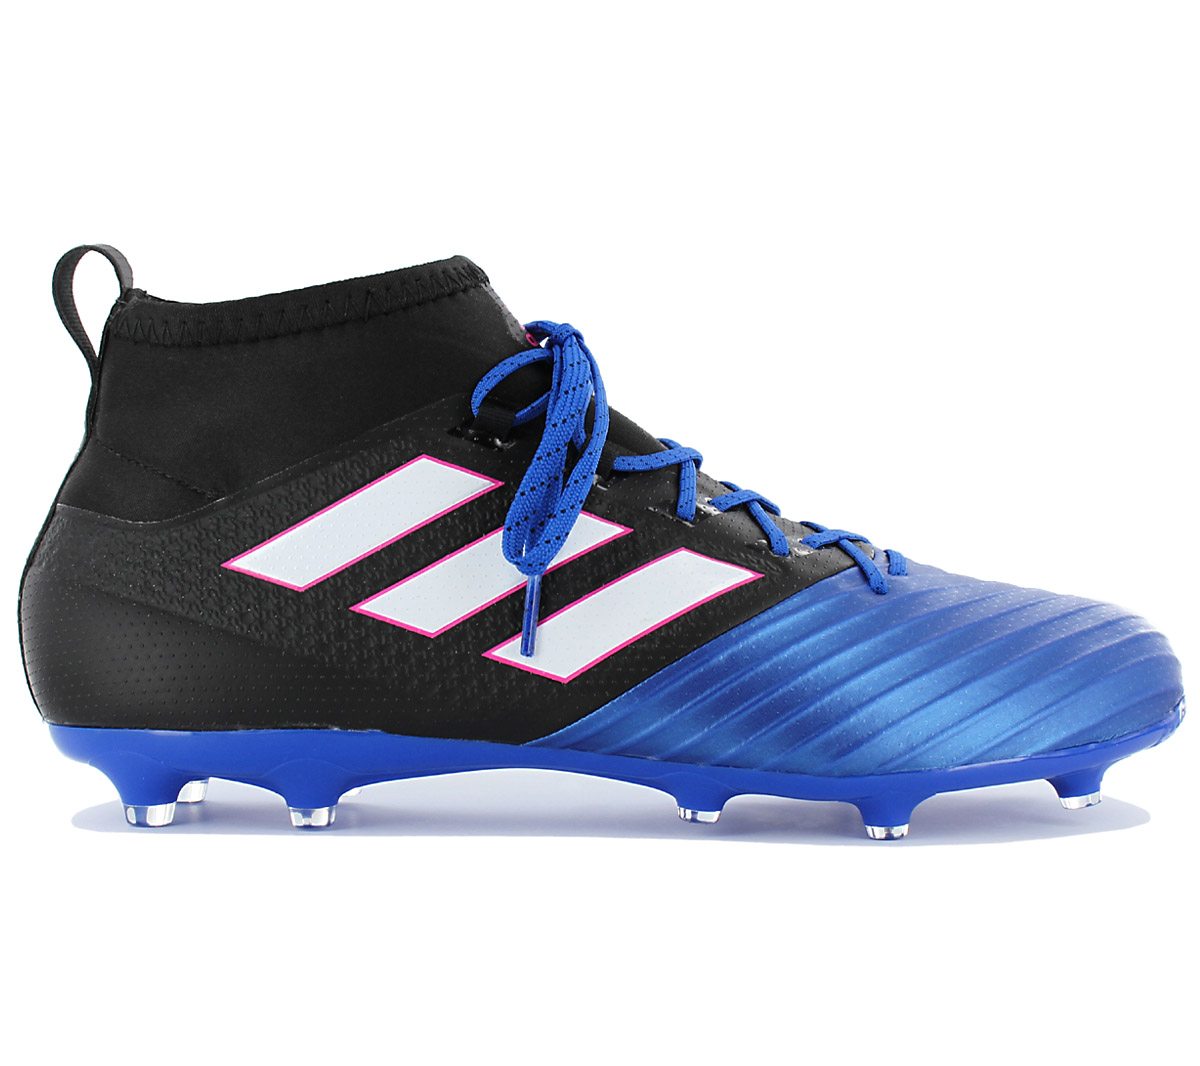 Details about Adidas Ace 17.2 Primemesh Fg Men's Football Boots Black Studs New BB4325 Sale